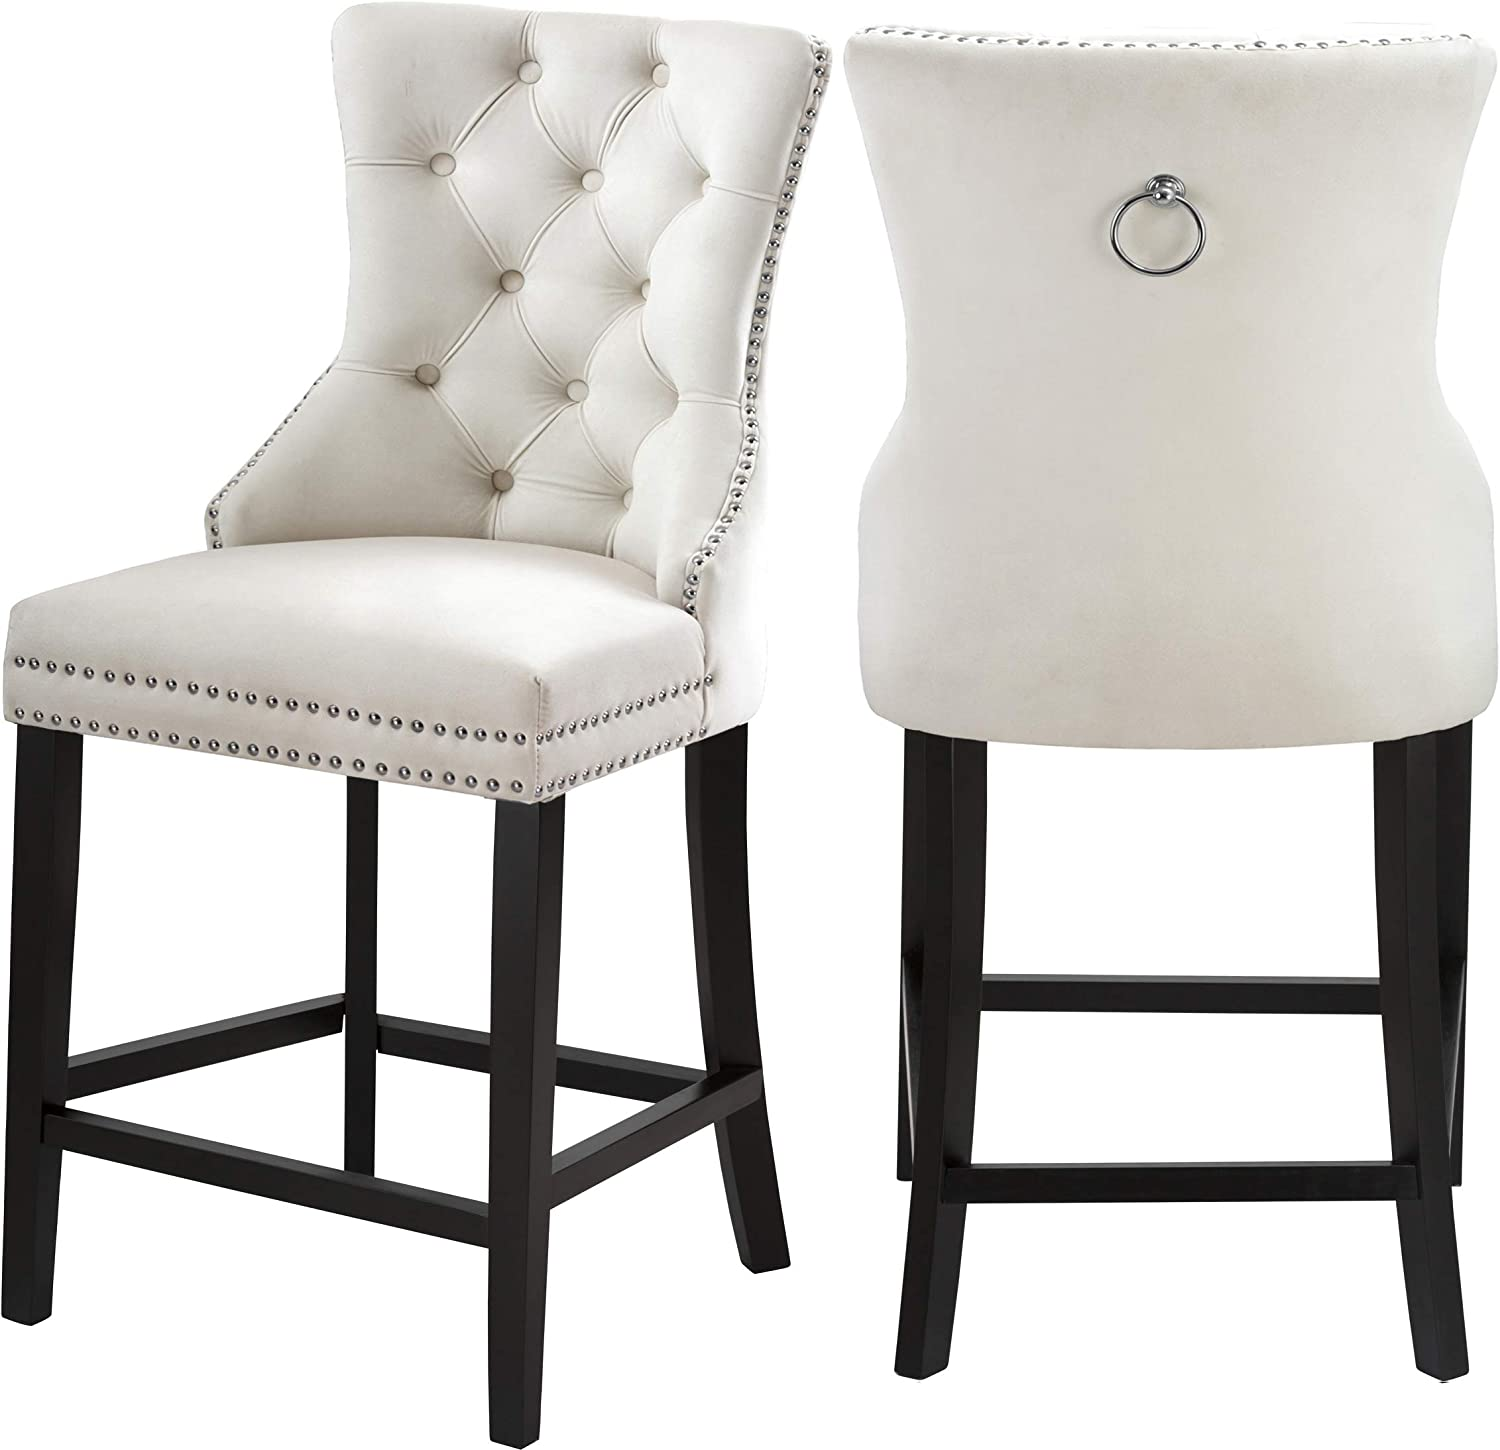 "Meridian Furniture Nikki Collection Modern | Contemporary Cream Velvet Upholstered Counter Stool Wood Legs, Button Tufting, and Chrome Nailhead Trim, Set of 2, 21"" W x 23"" D x 42"" H, Cream"